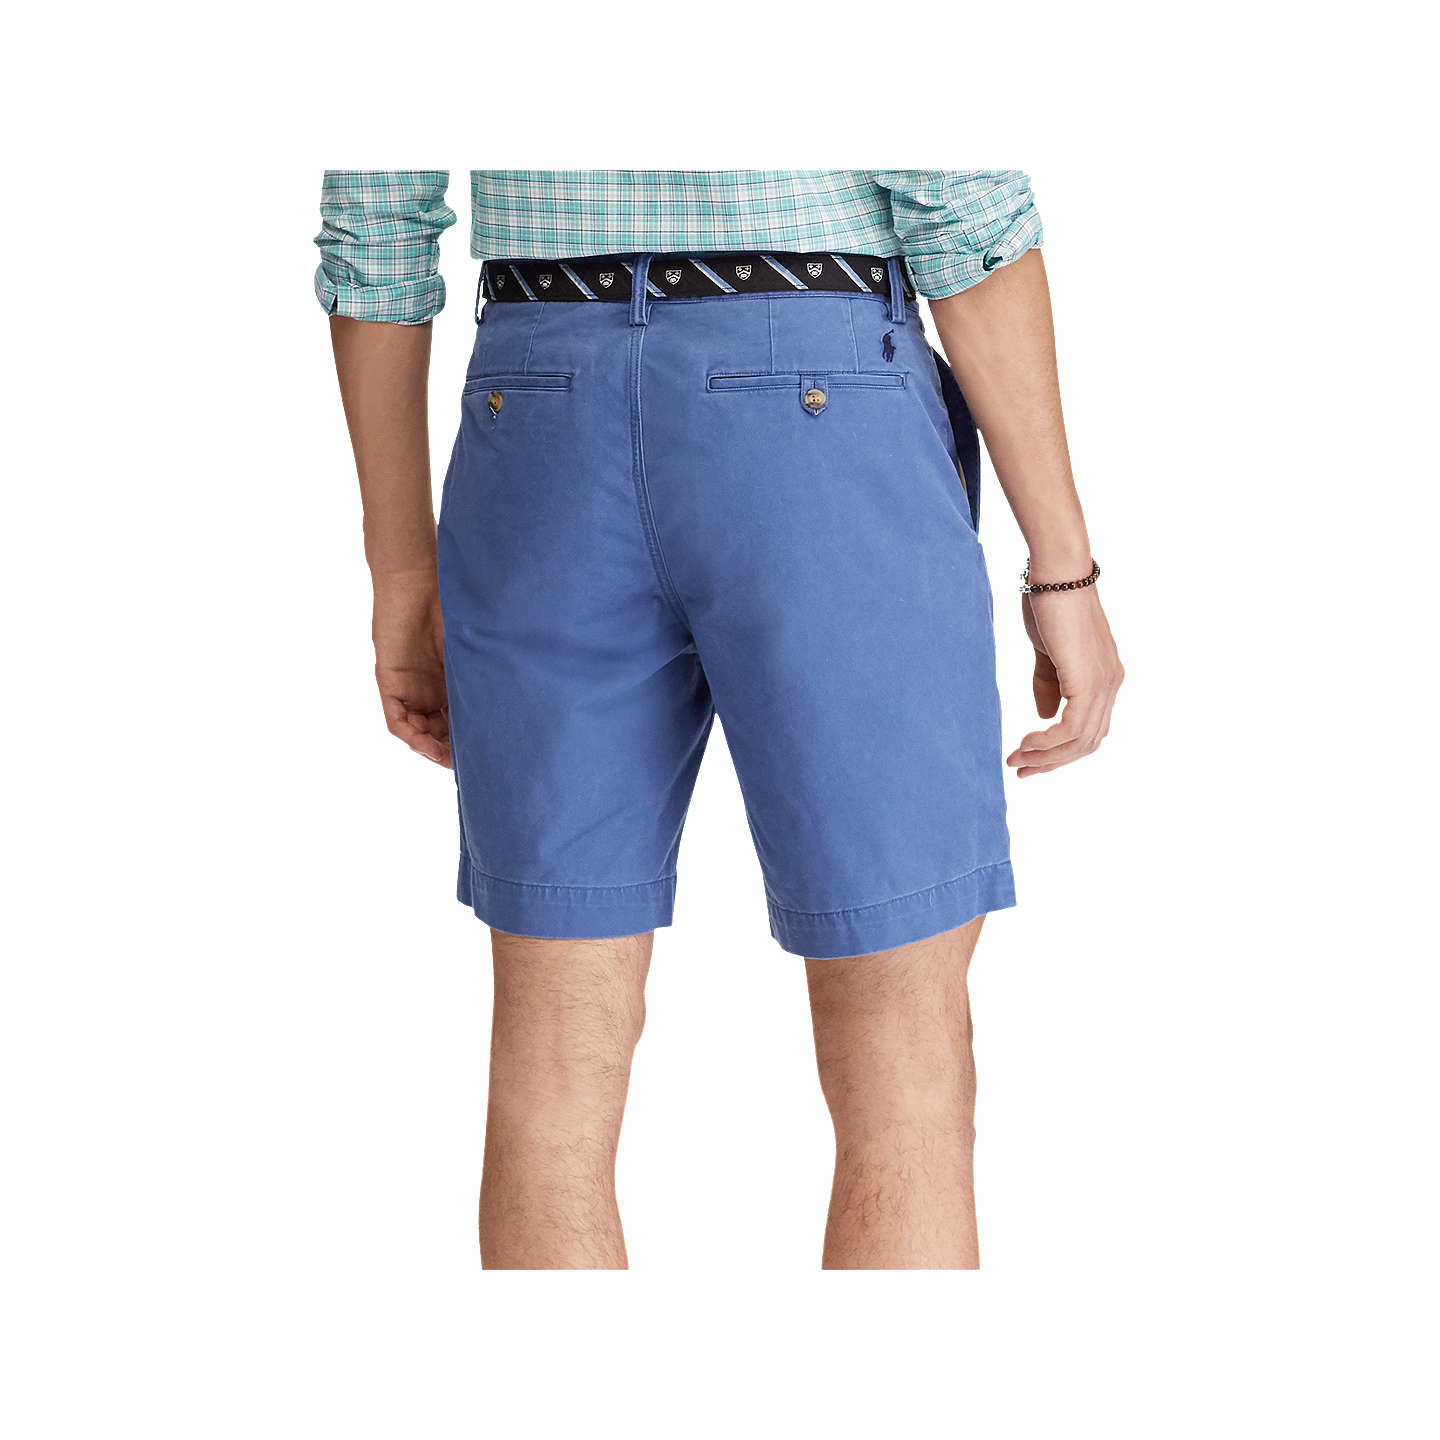 BuyPolo Ralph Lauren Bedford Shorts, Haven Blue, 32R Online at johnlewis.com